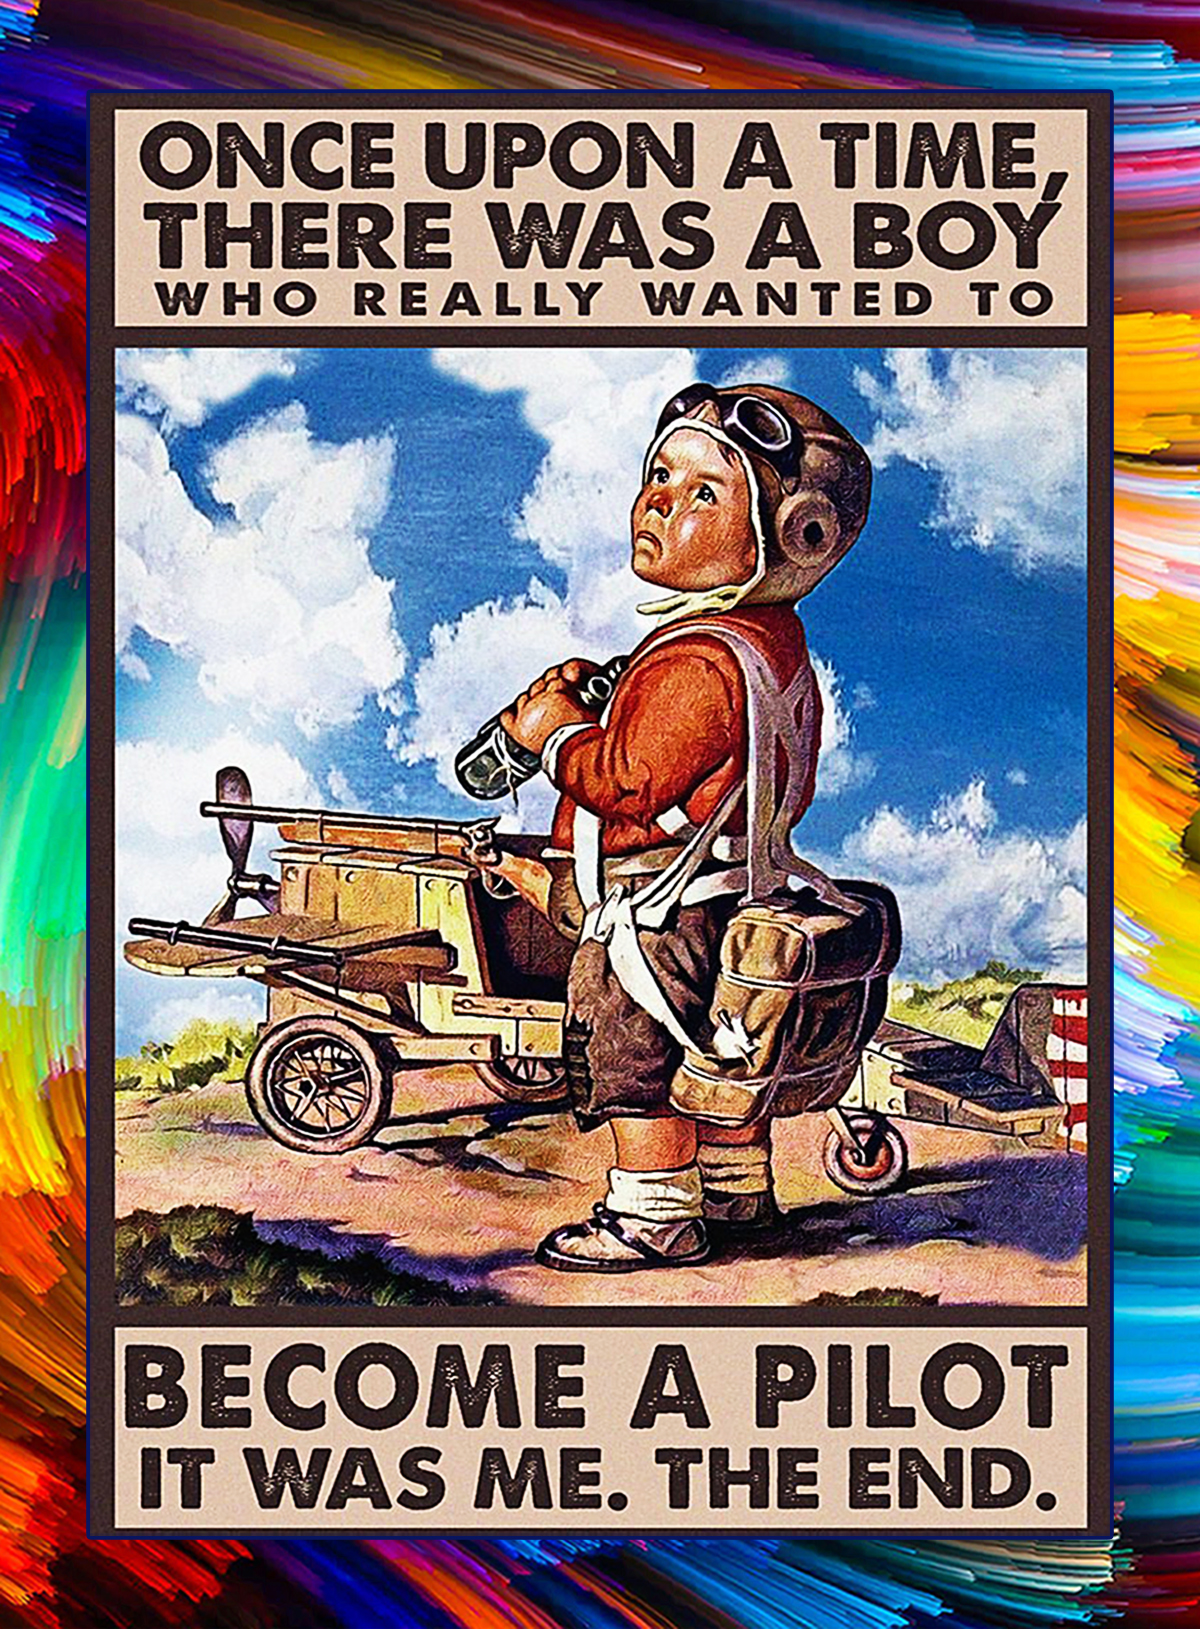 Once upon a time there was a boy who really wanted to become a pilot poster - A1